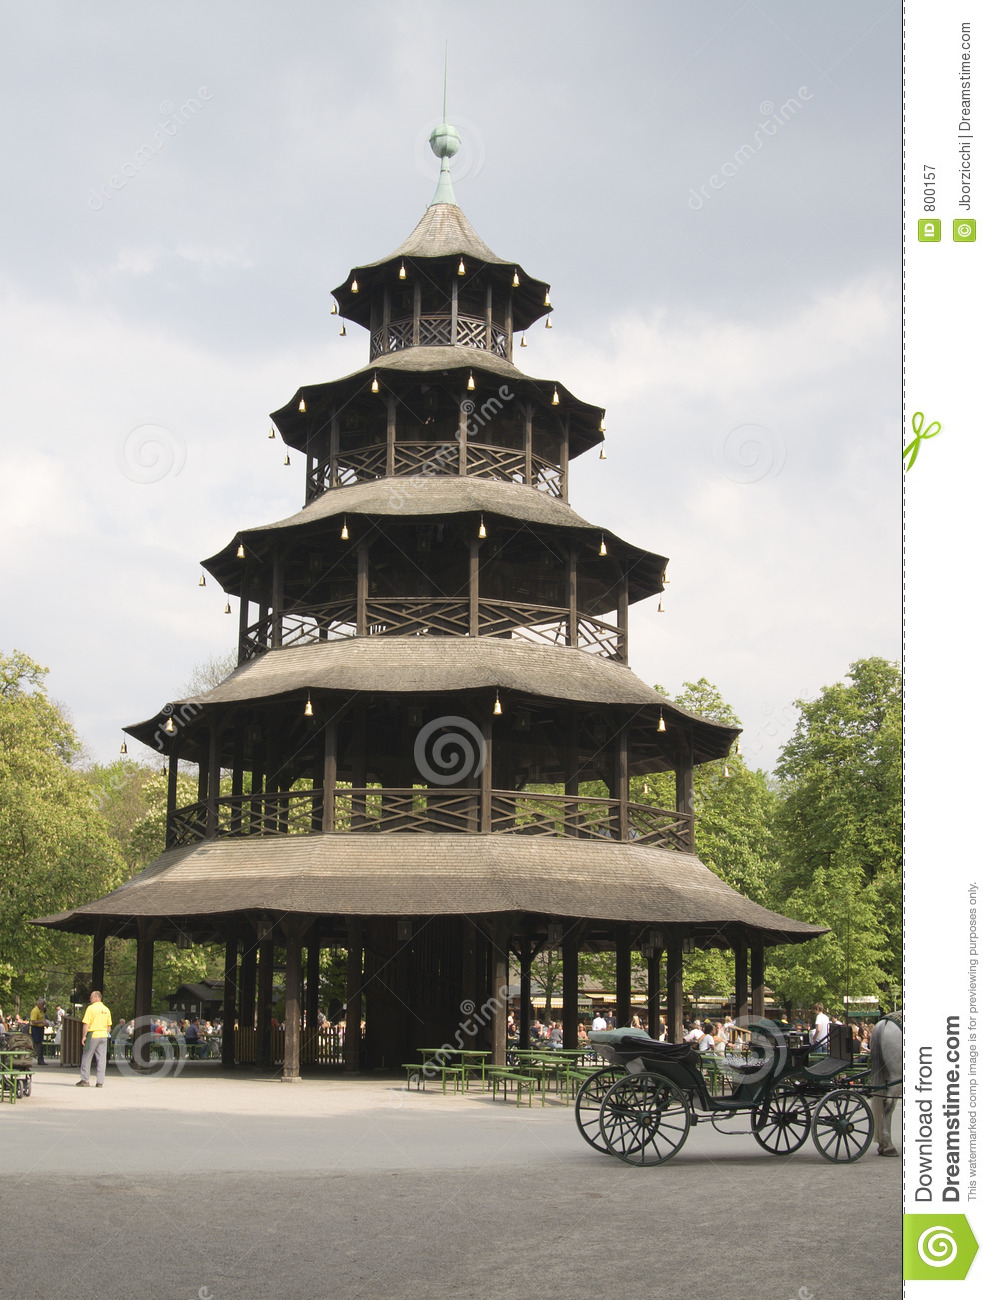 Tour chinoise jardin anglais munich photographie stock for Jardin anglais allemagne